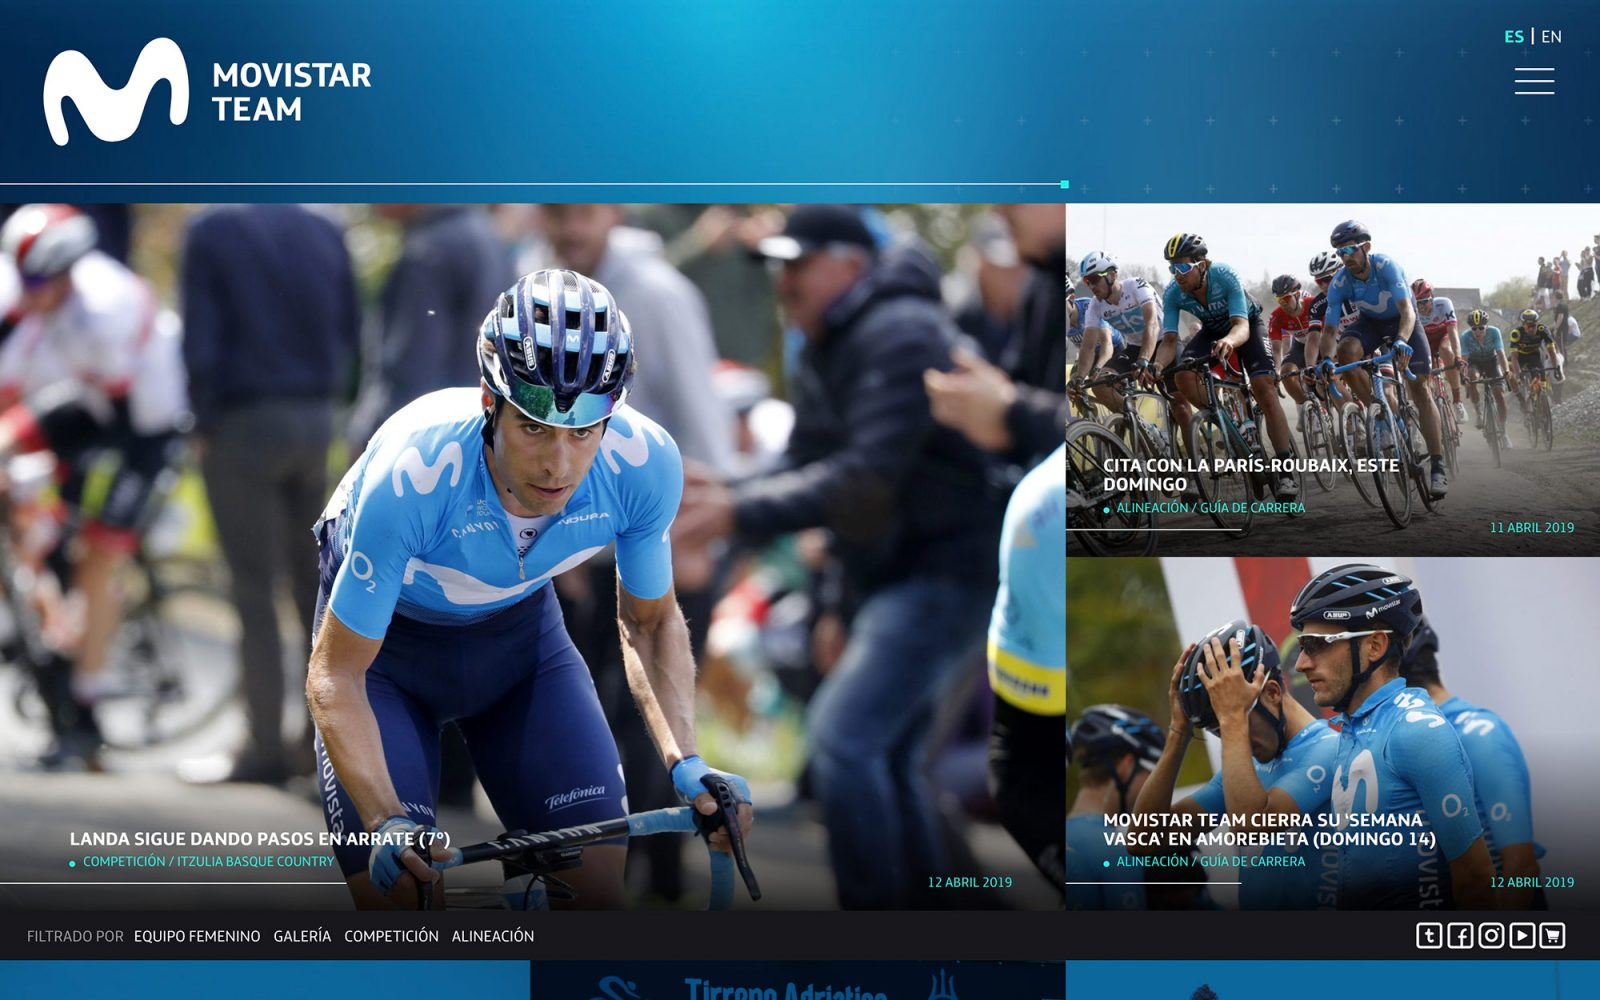 Web para el Movistar Team